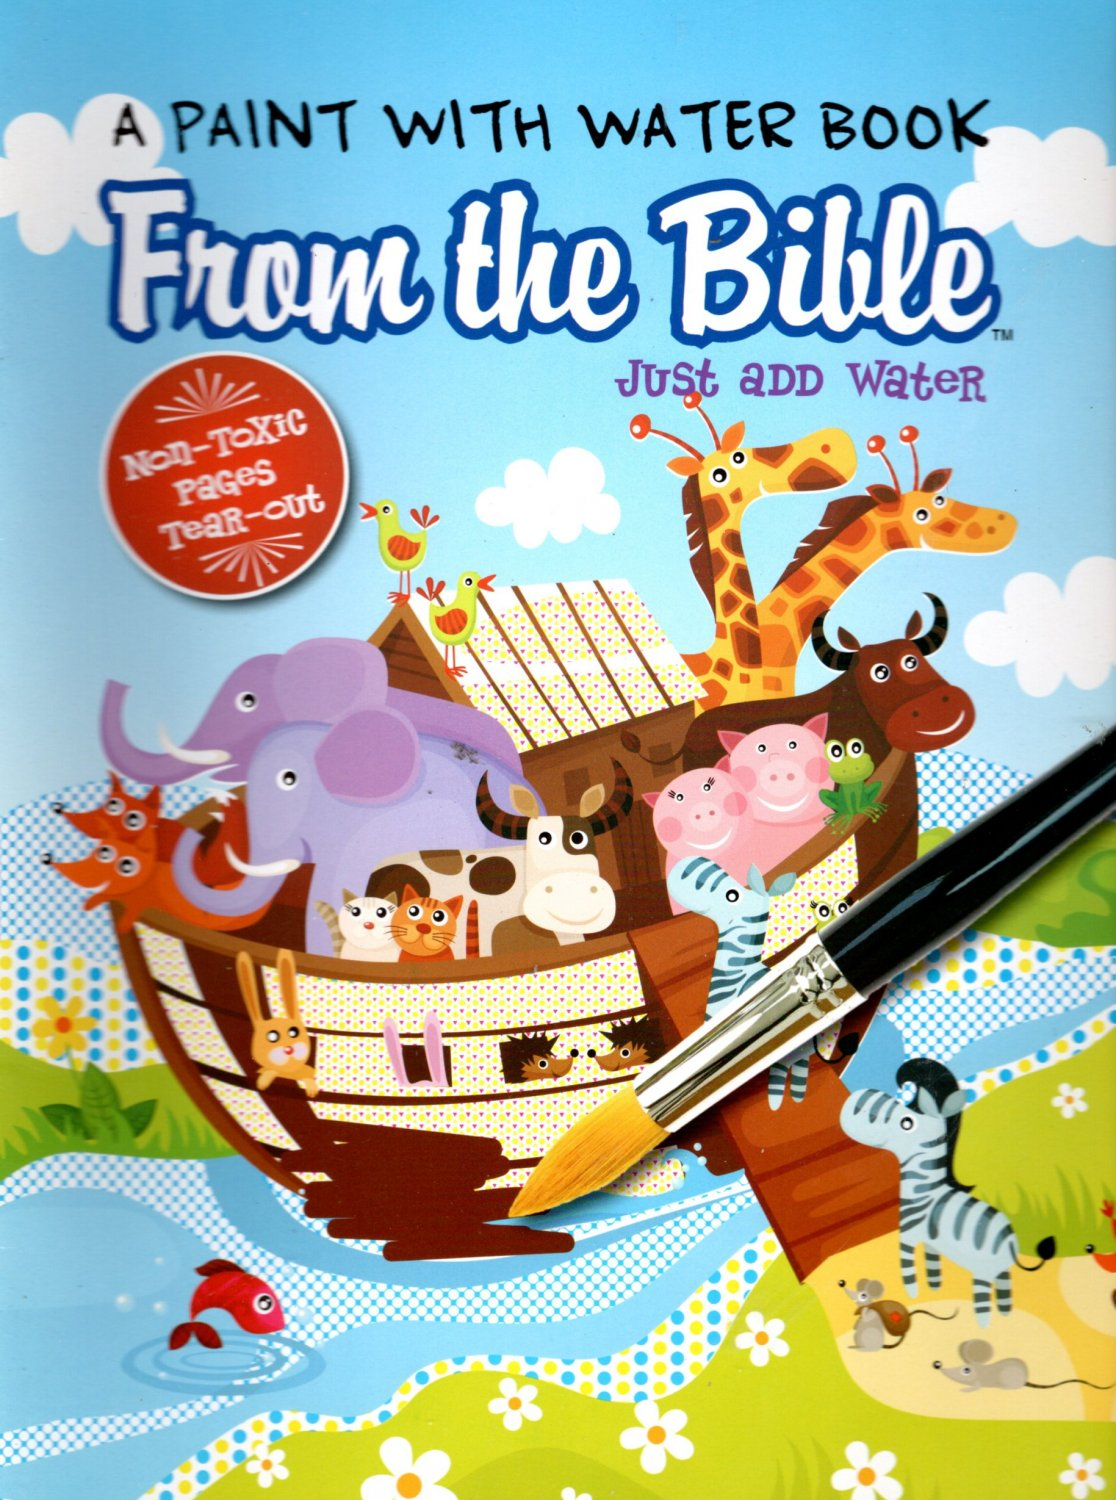 A Paint with Water - Book from the Bible - Just Add Water - Coloring Book